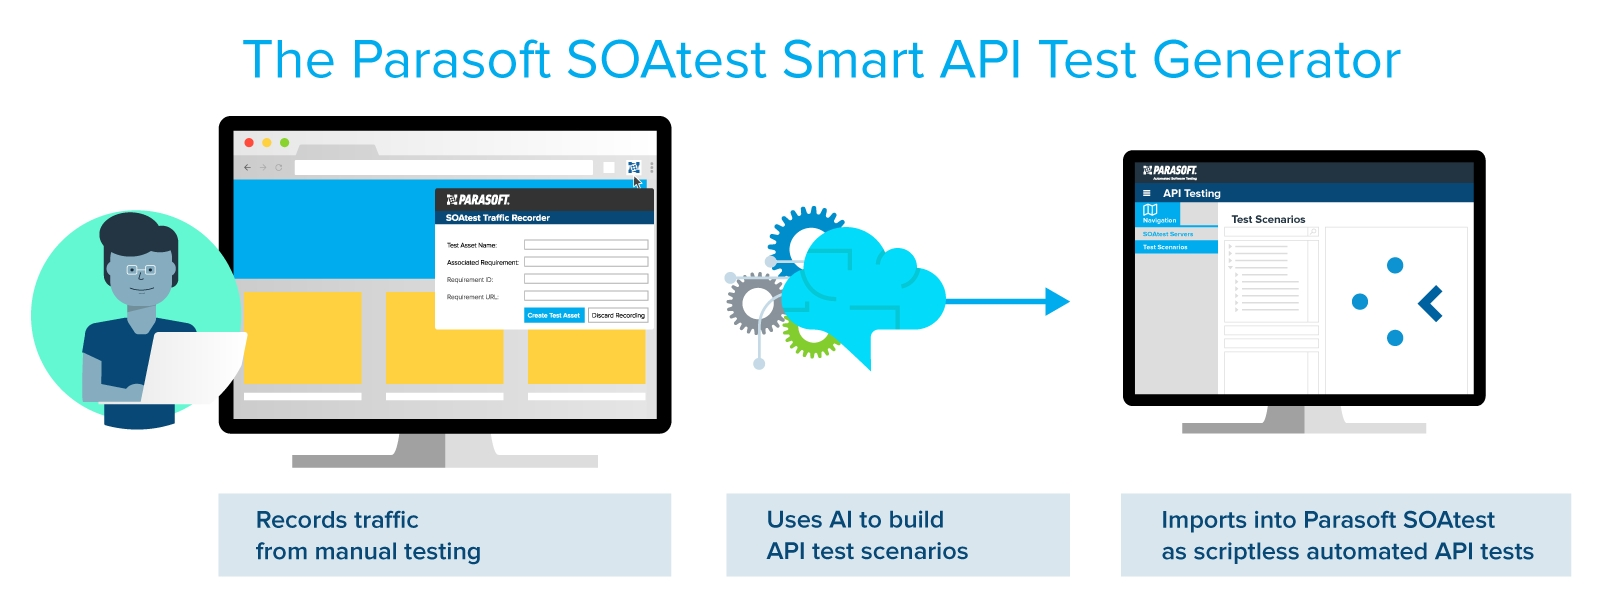 Parasoft revolutioniert API Tests mit SOAtest Smart API Test Generator